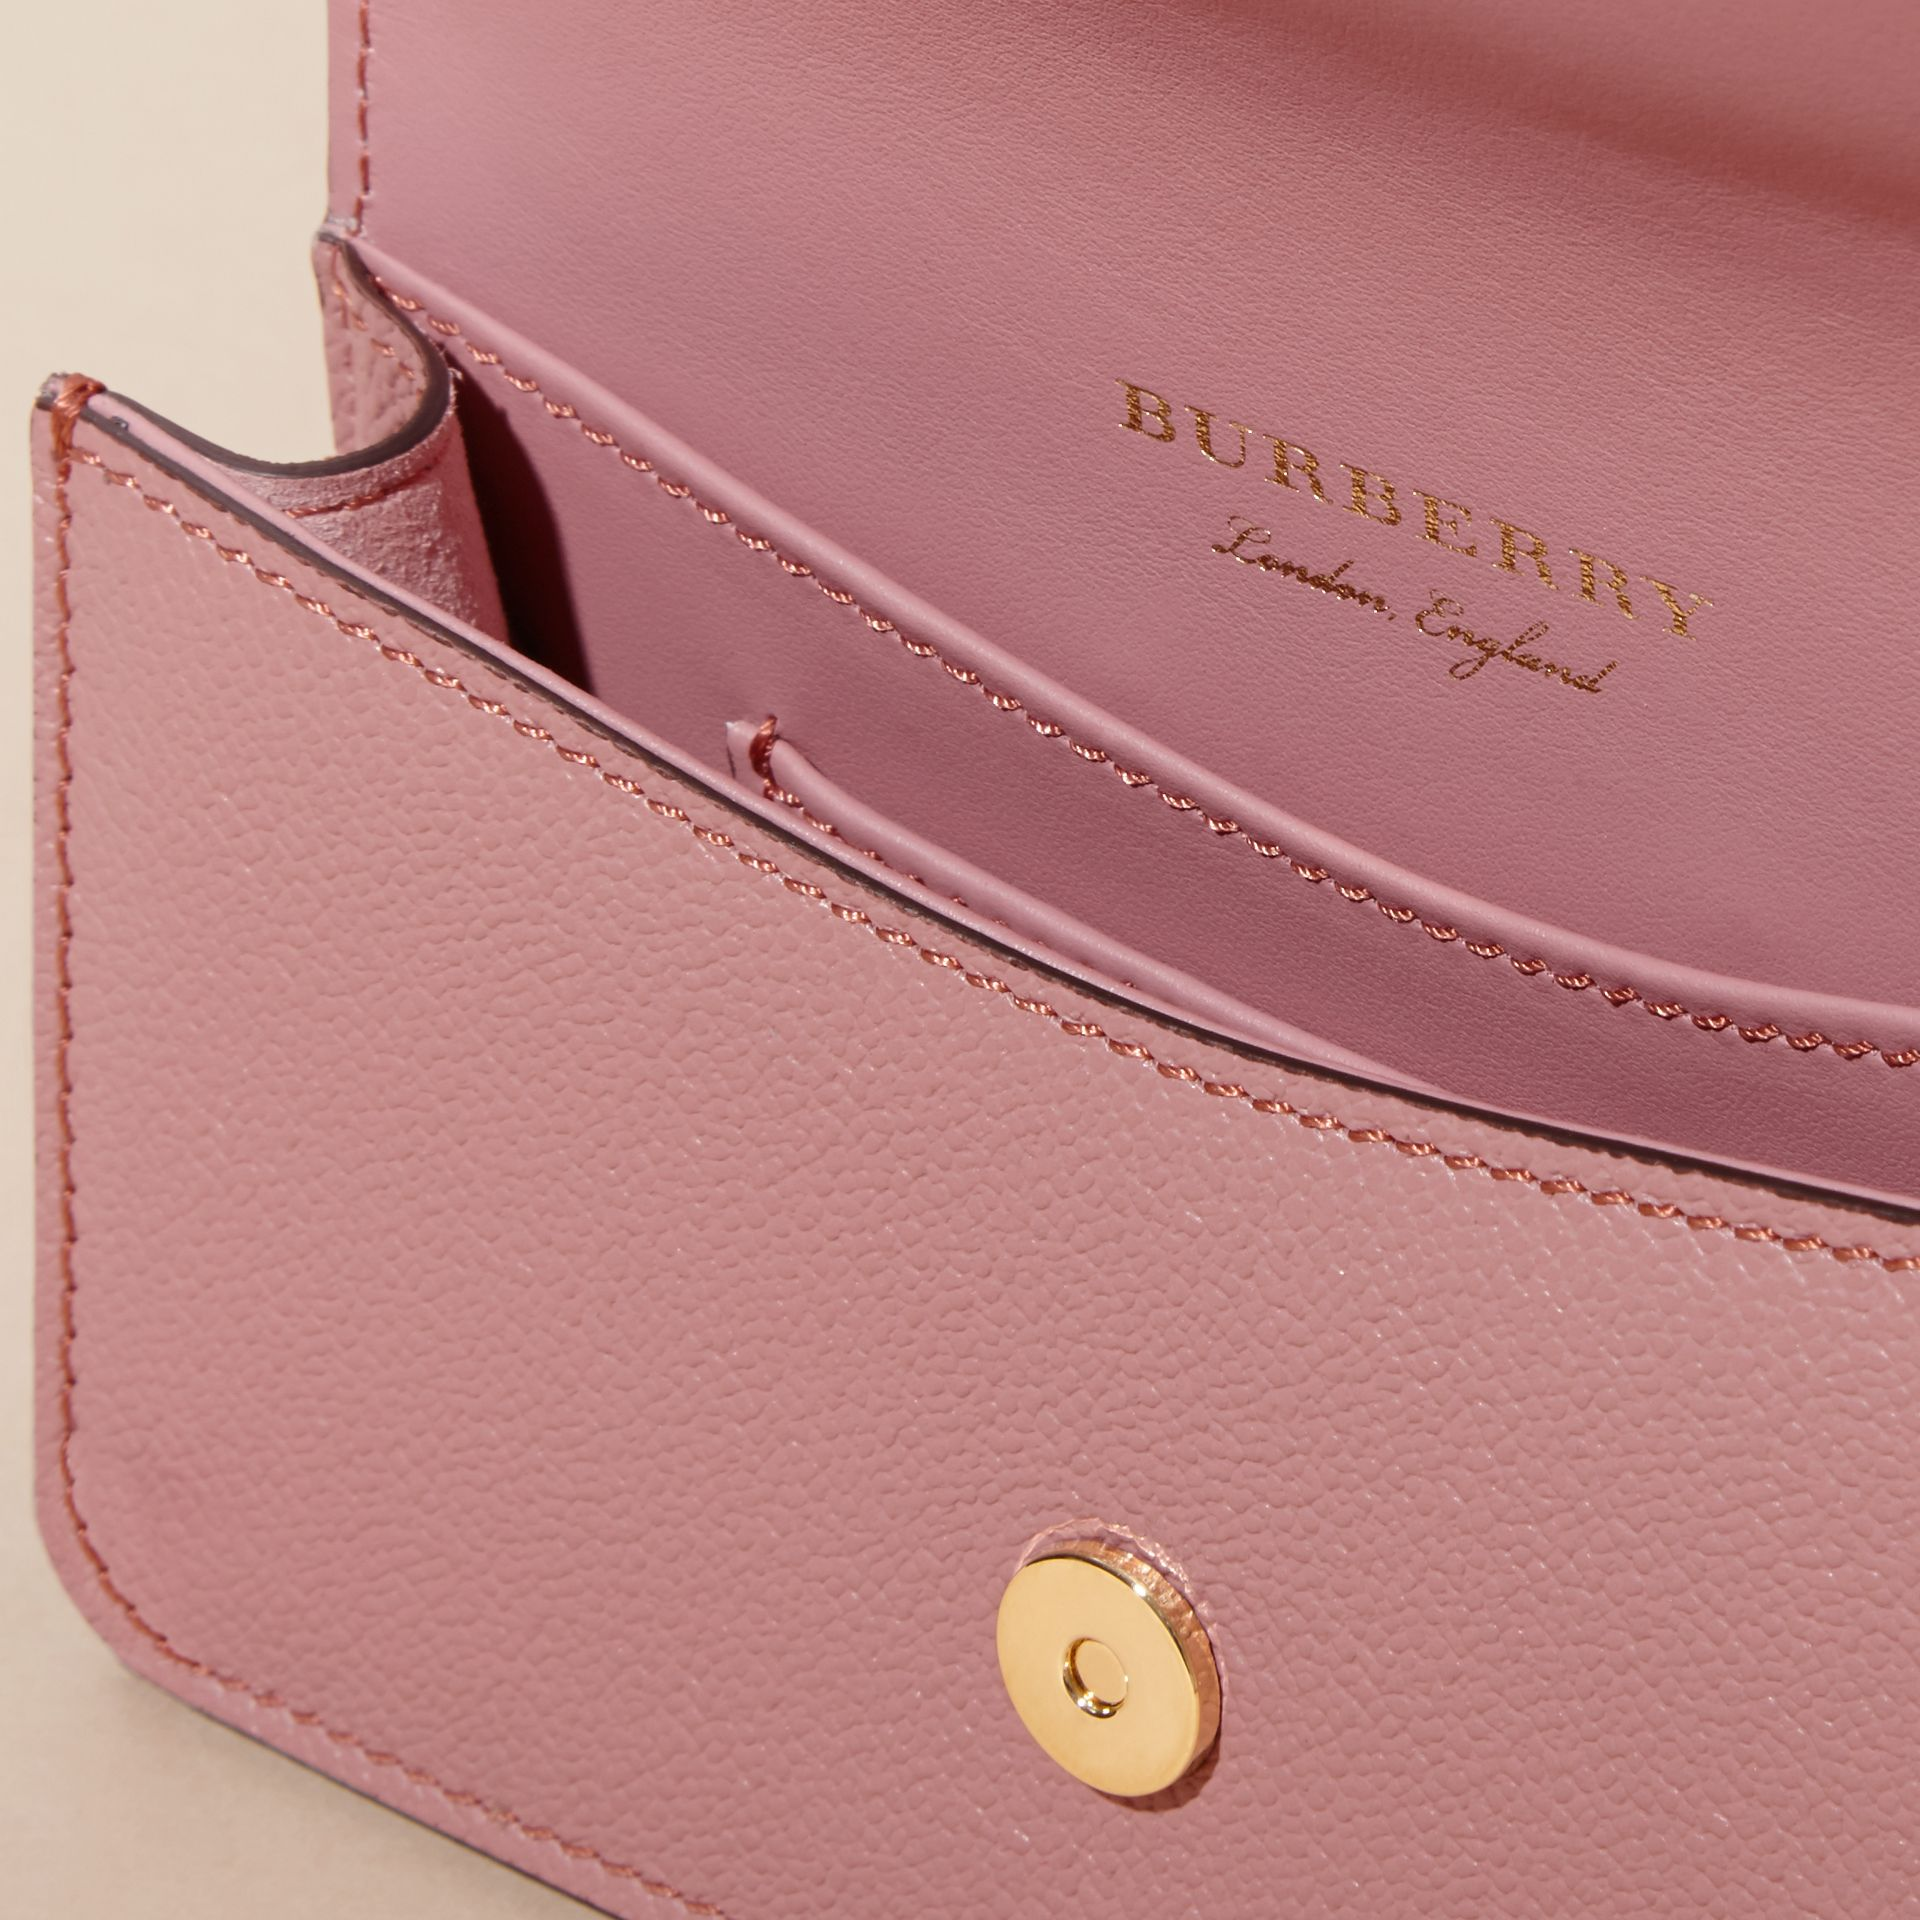 The Mini Buckle Bag in Grainy Leather in Dusty Pink - Women | Burberry Singapore - gallery image 6